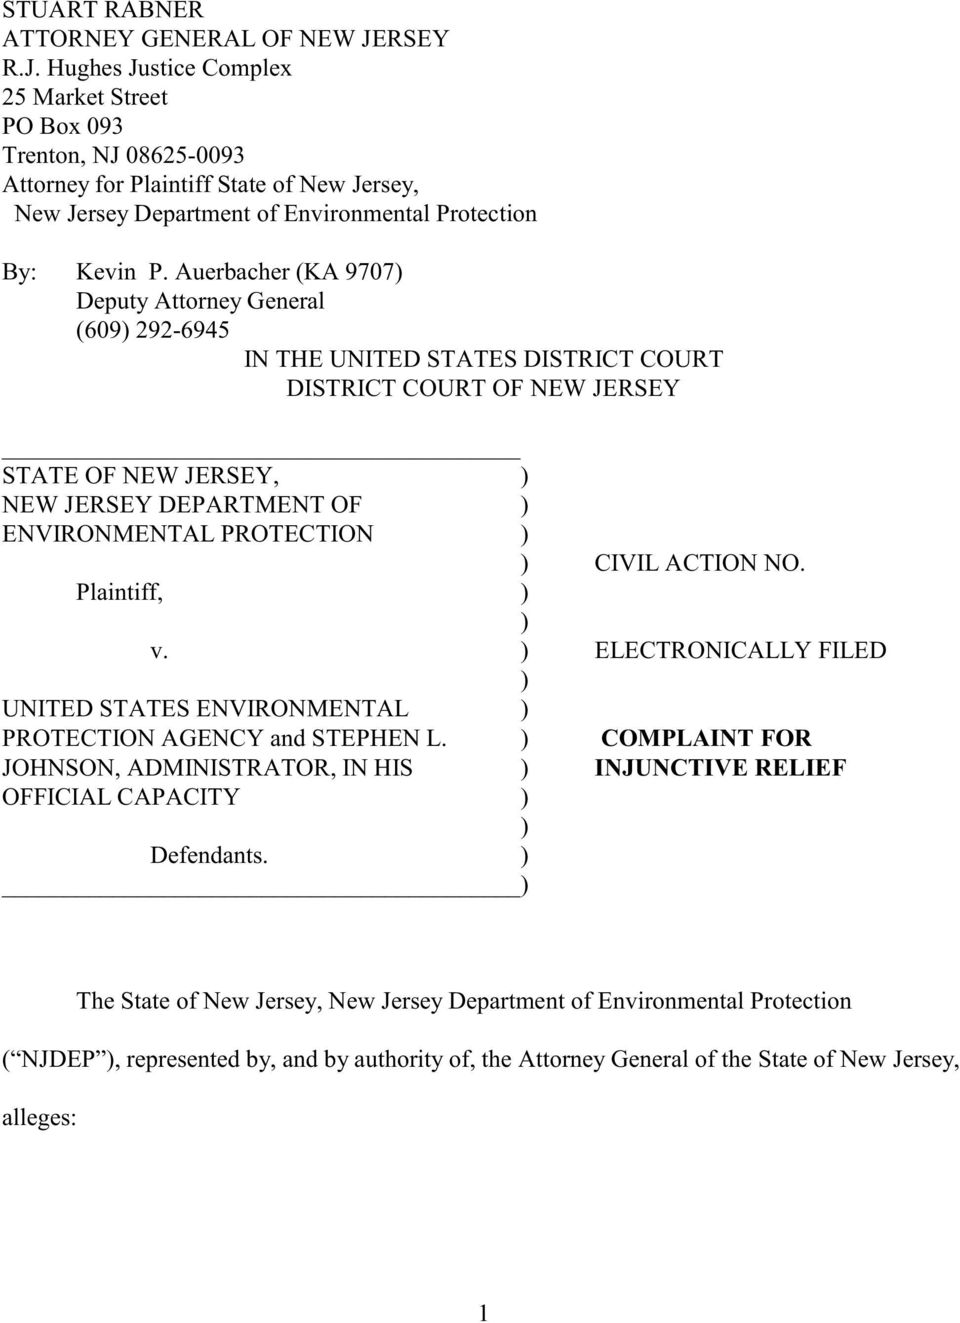 Auerbacher (KA 9707) Deputy Attorney General (609) 292-6945 IN THE UNITED STATES DISTRICT COURT DISTRICT COURT OF NEW JERSEY STATE OF NEW JERSEY, ) NEW JERSEY DEPARTMENT OF ) ENVIRONMENTAL PROTECTION